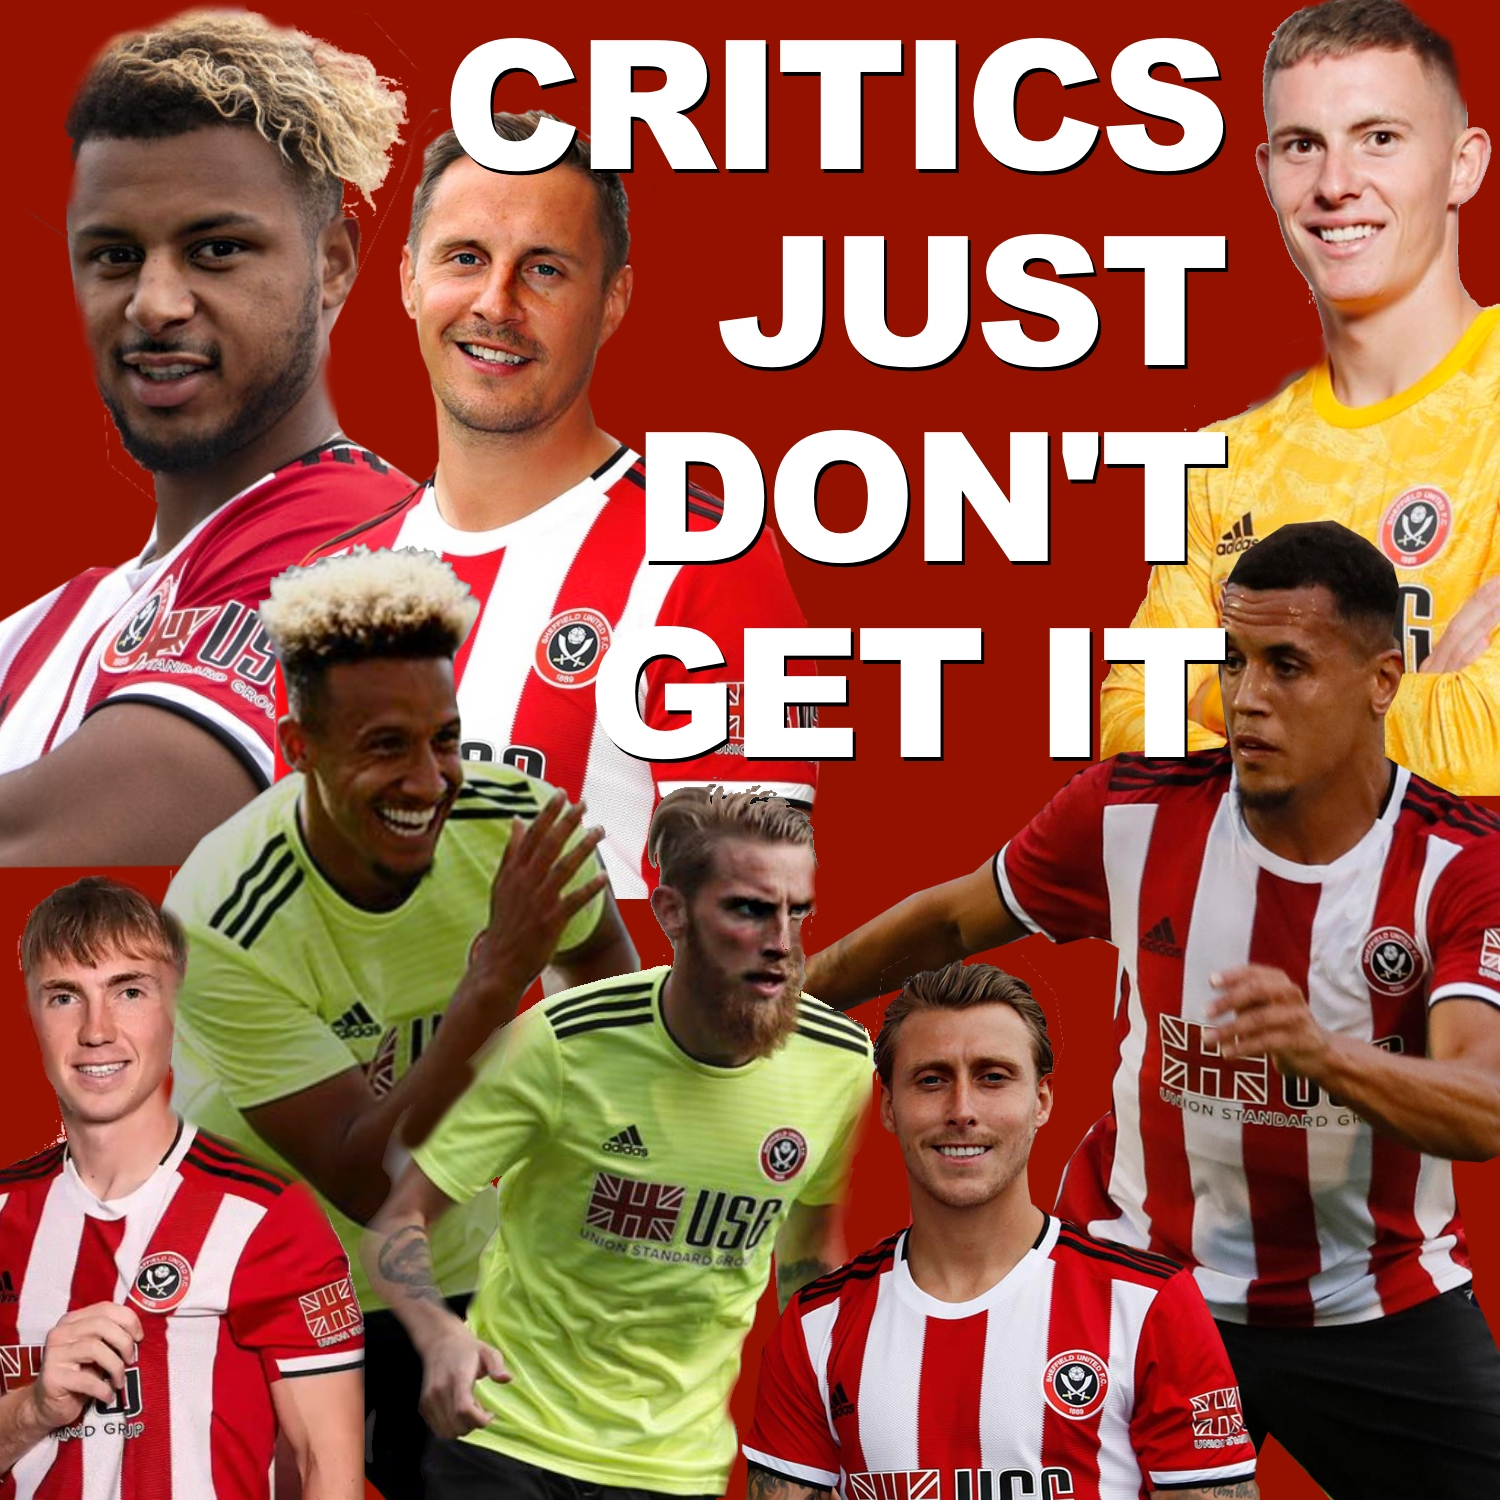 Critics condemning Sheffield United to relegation before a ball has been kicked just don't get it